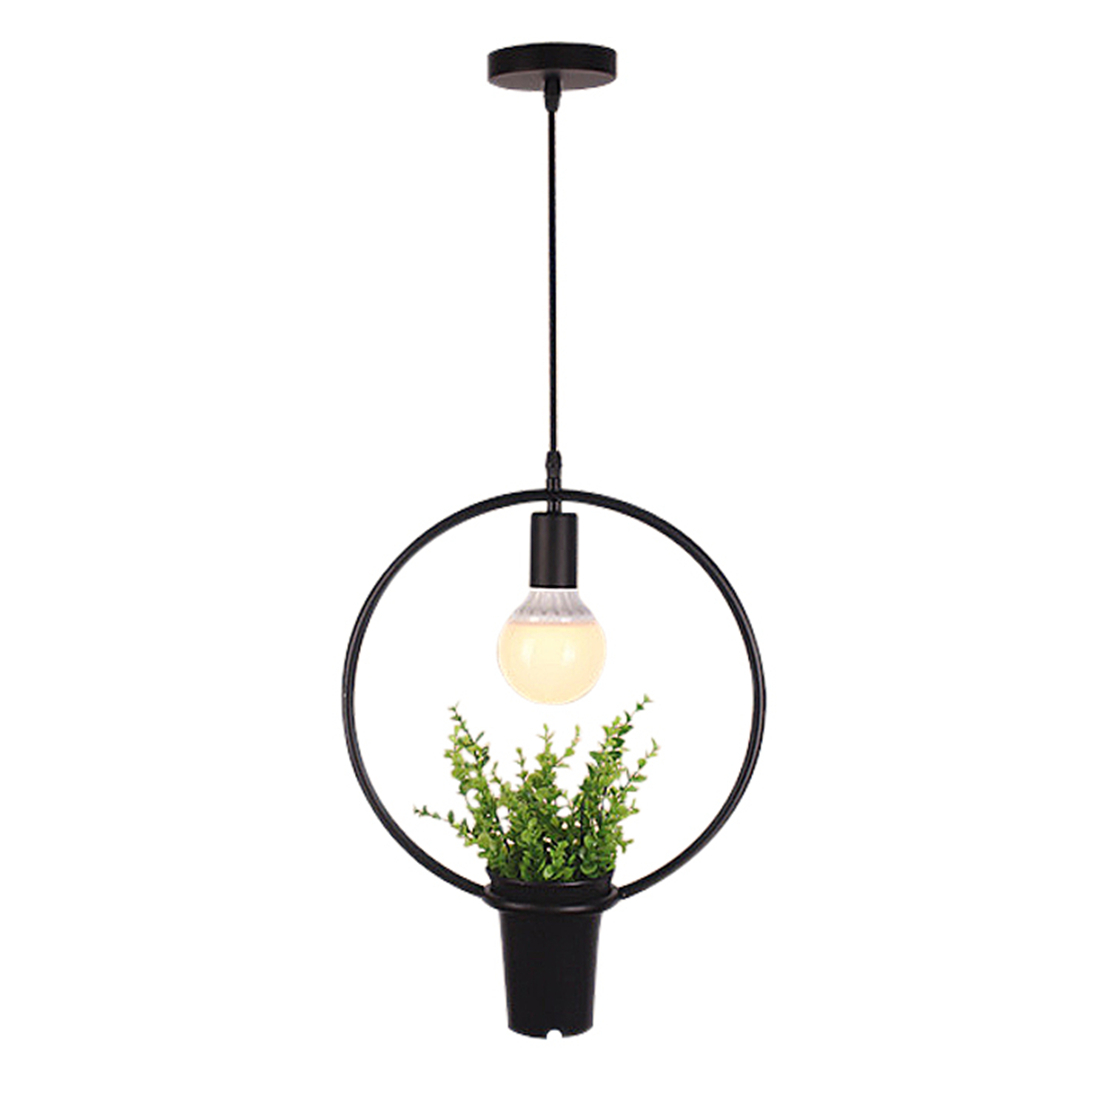 Black Ring Green Plant Hanging Lamps Retro Industrial Wind Creative Personality Chandelier Clothing Shop Cafe Restaurant Light